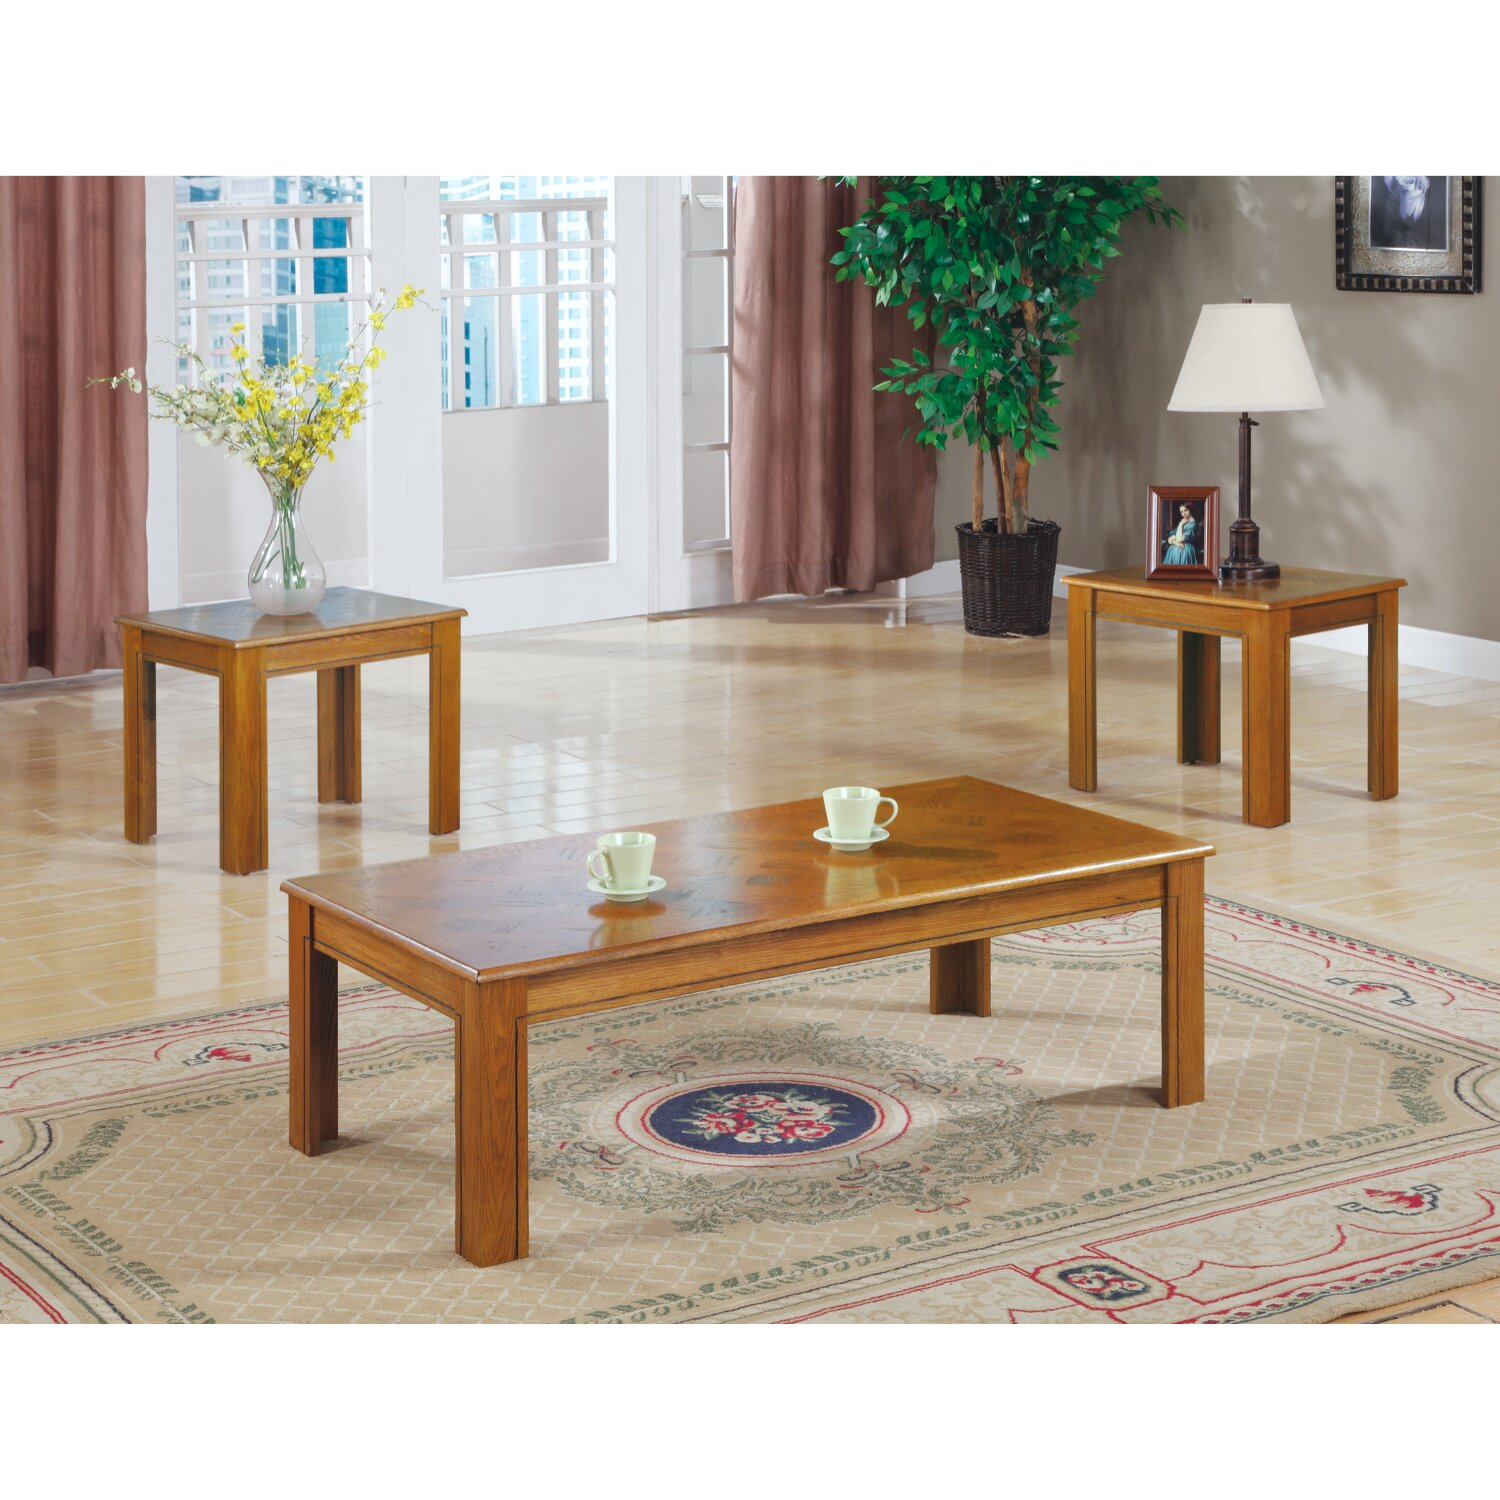 Wildon Home Junction City 3 Piece Coffee Table Set